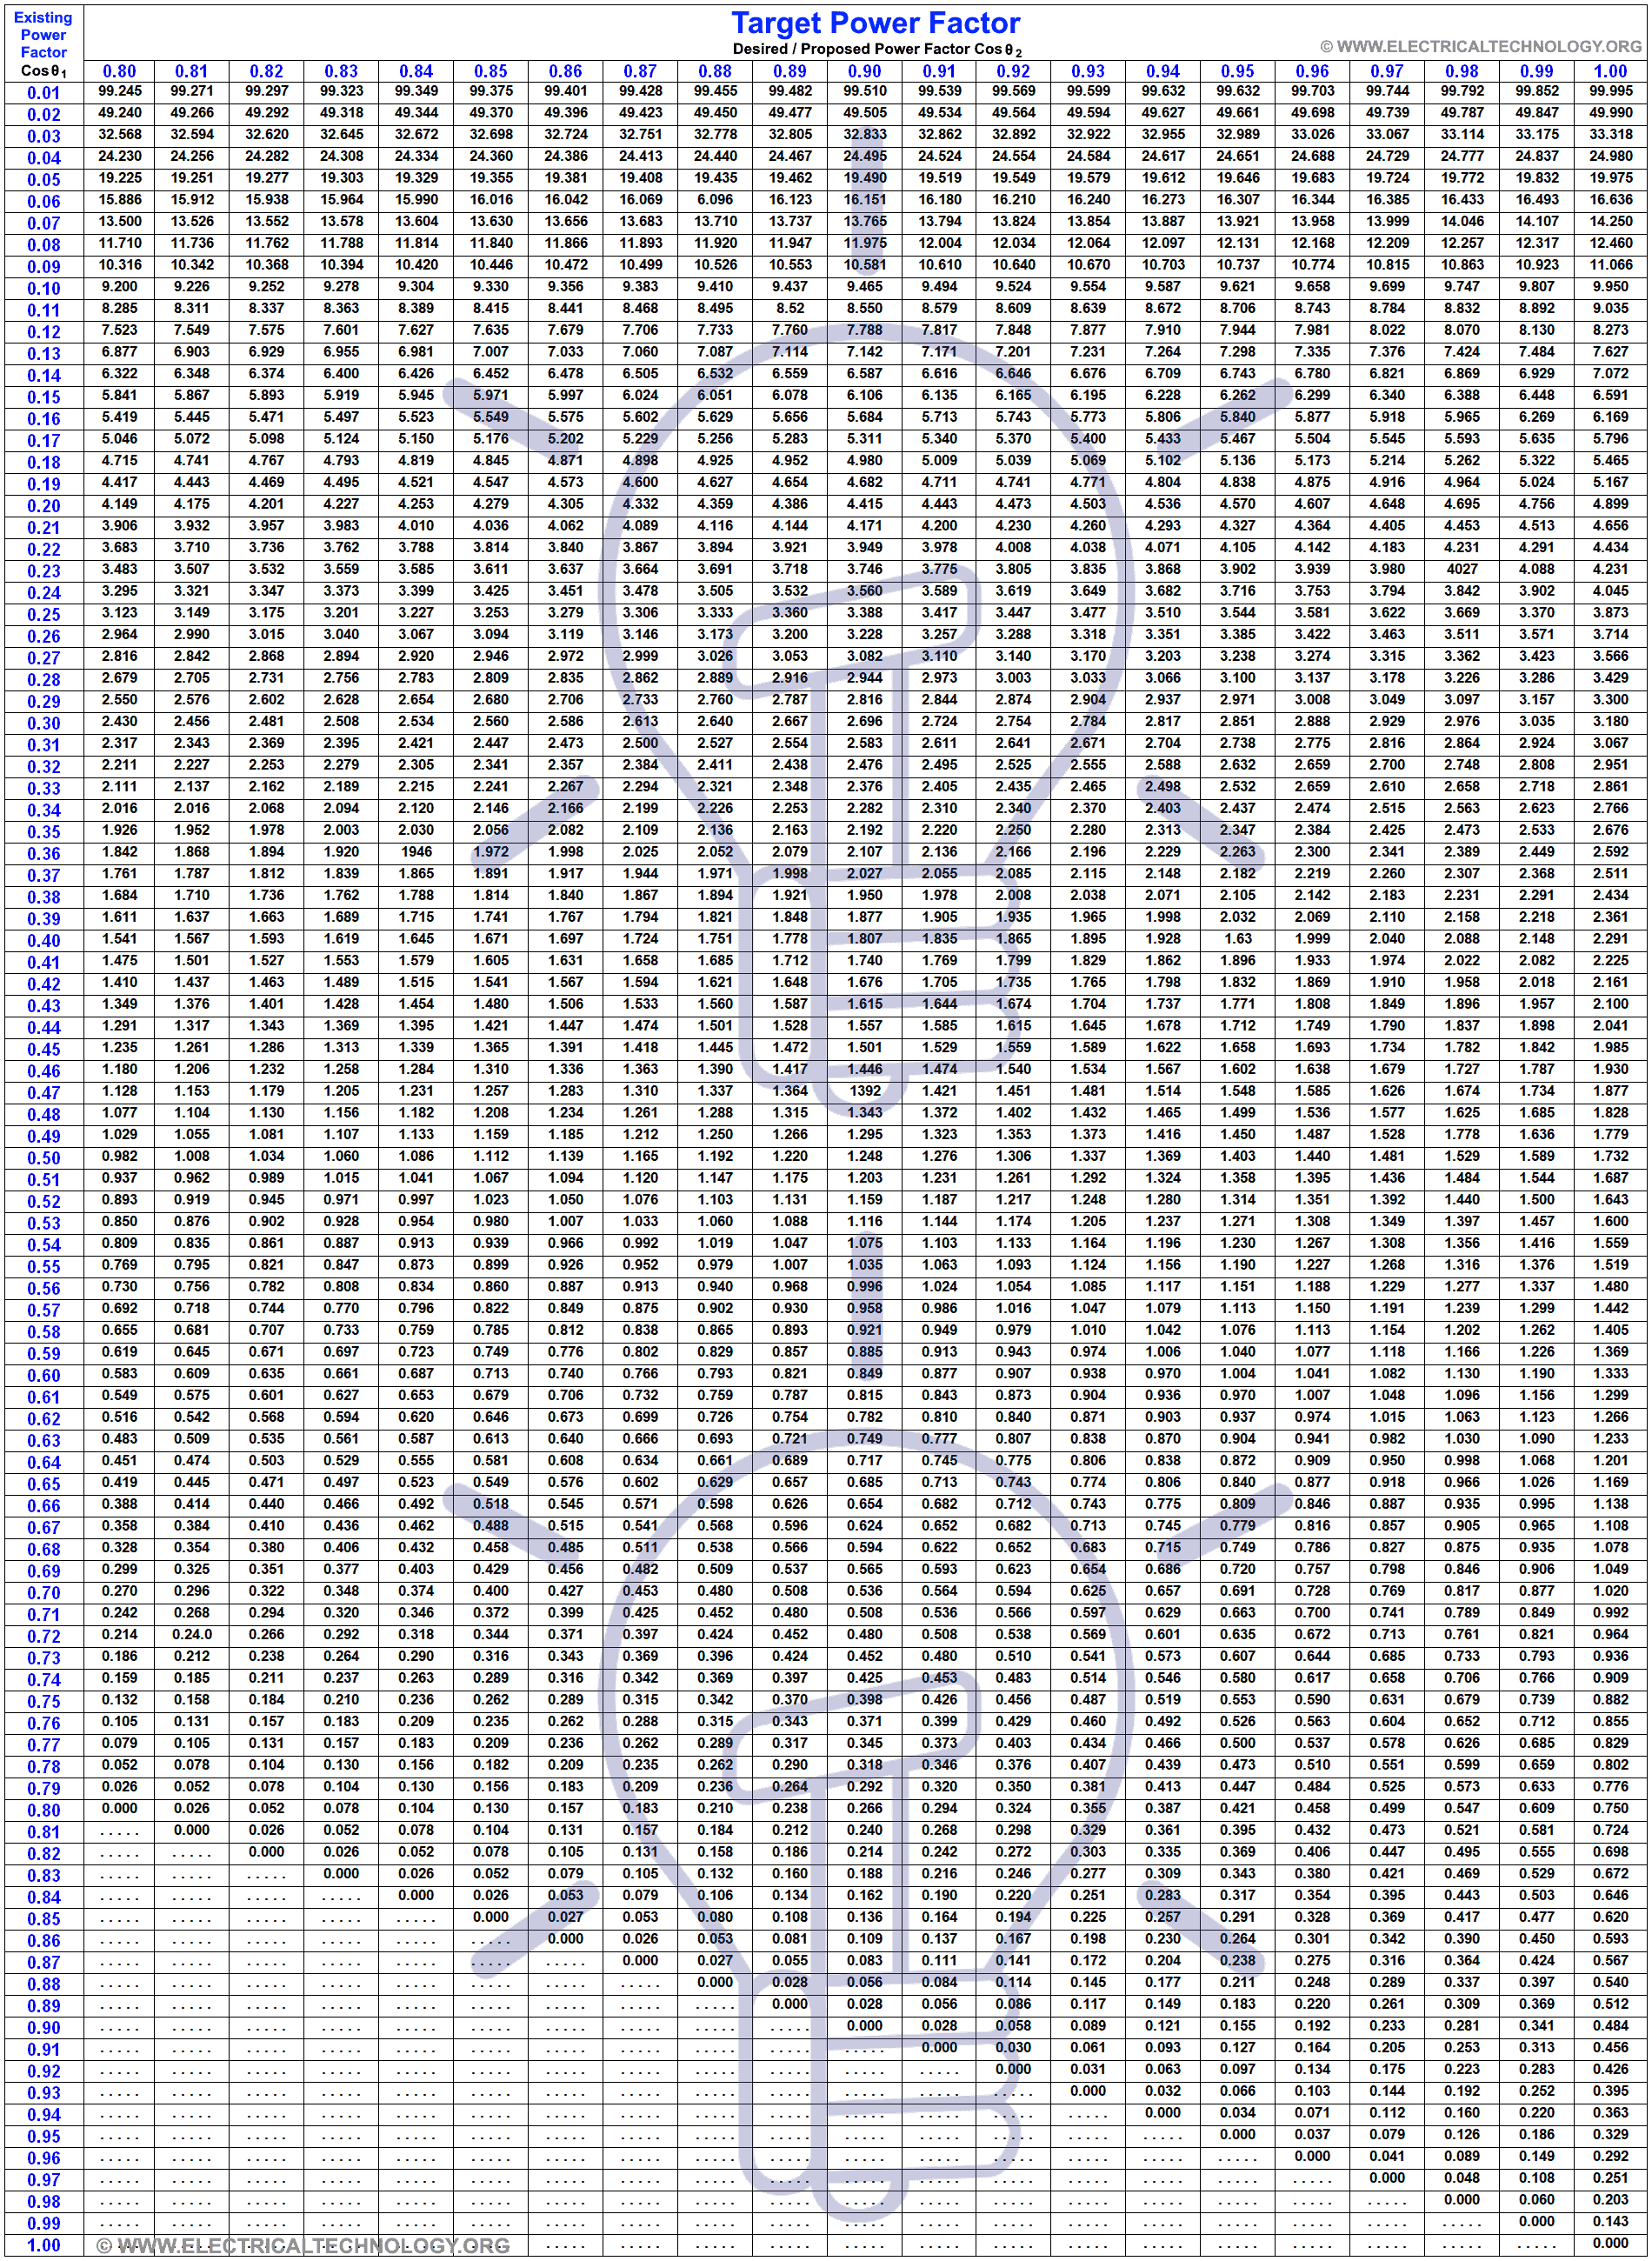 Table for How to Calculate the Suitable Capacitor Size in µ-Farads & kVAR for P.F Improvement